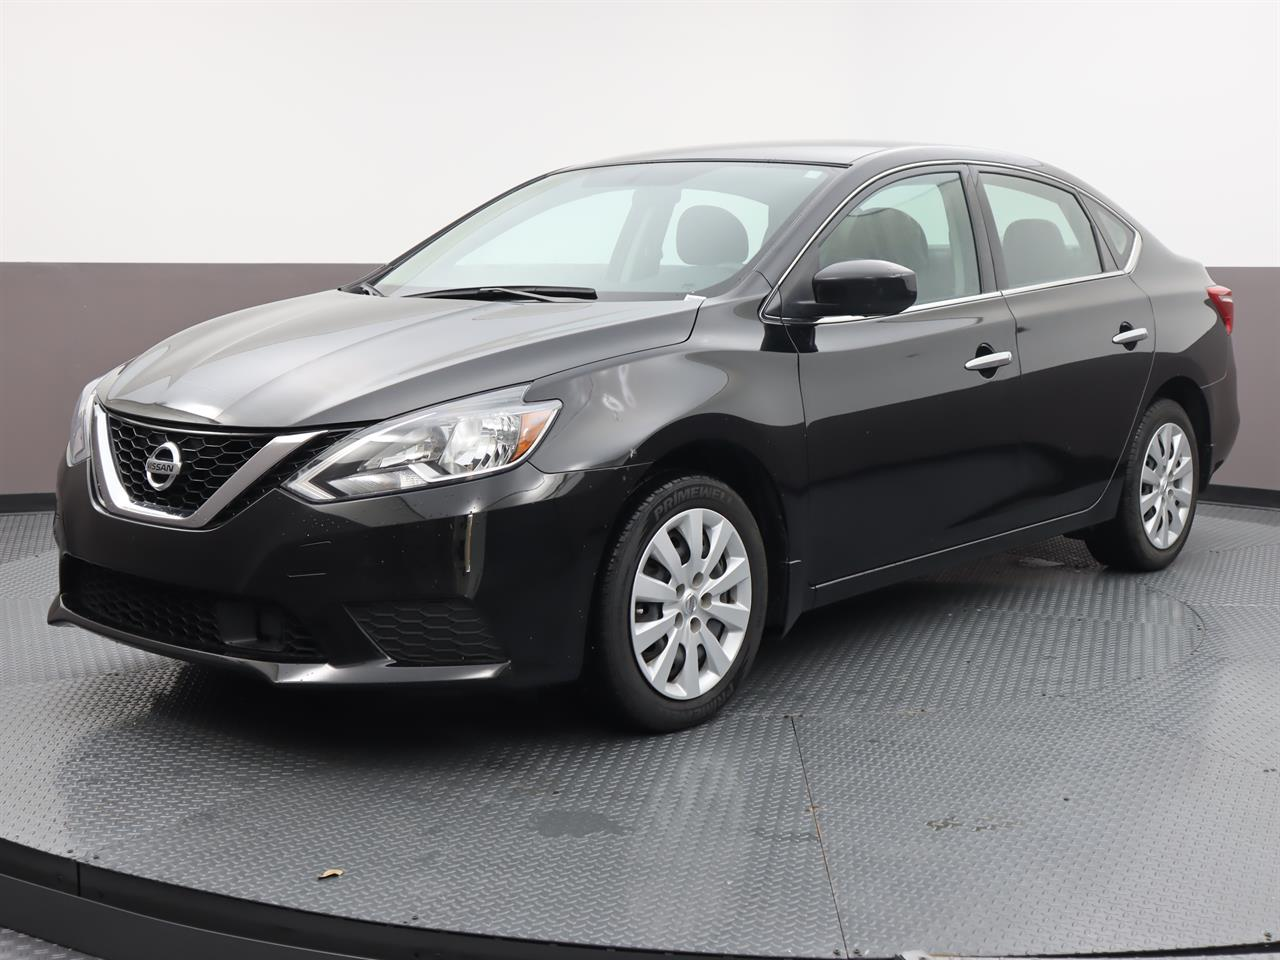 Used NISSAN SENTRA 2019 MARGATE S